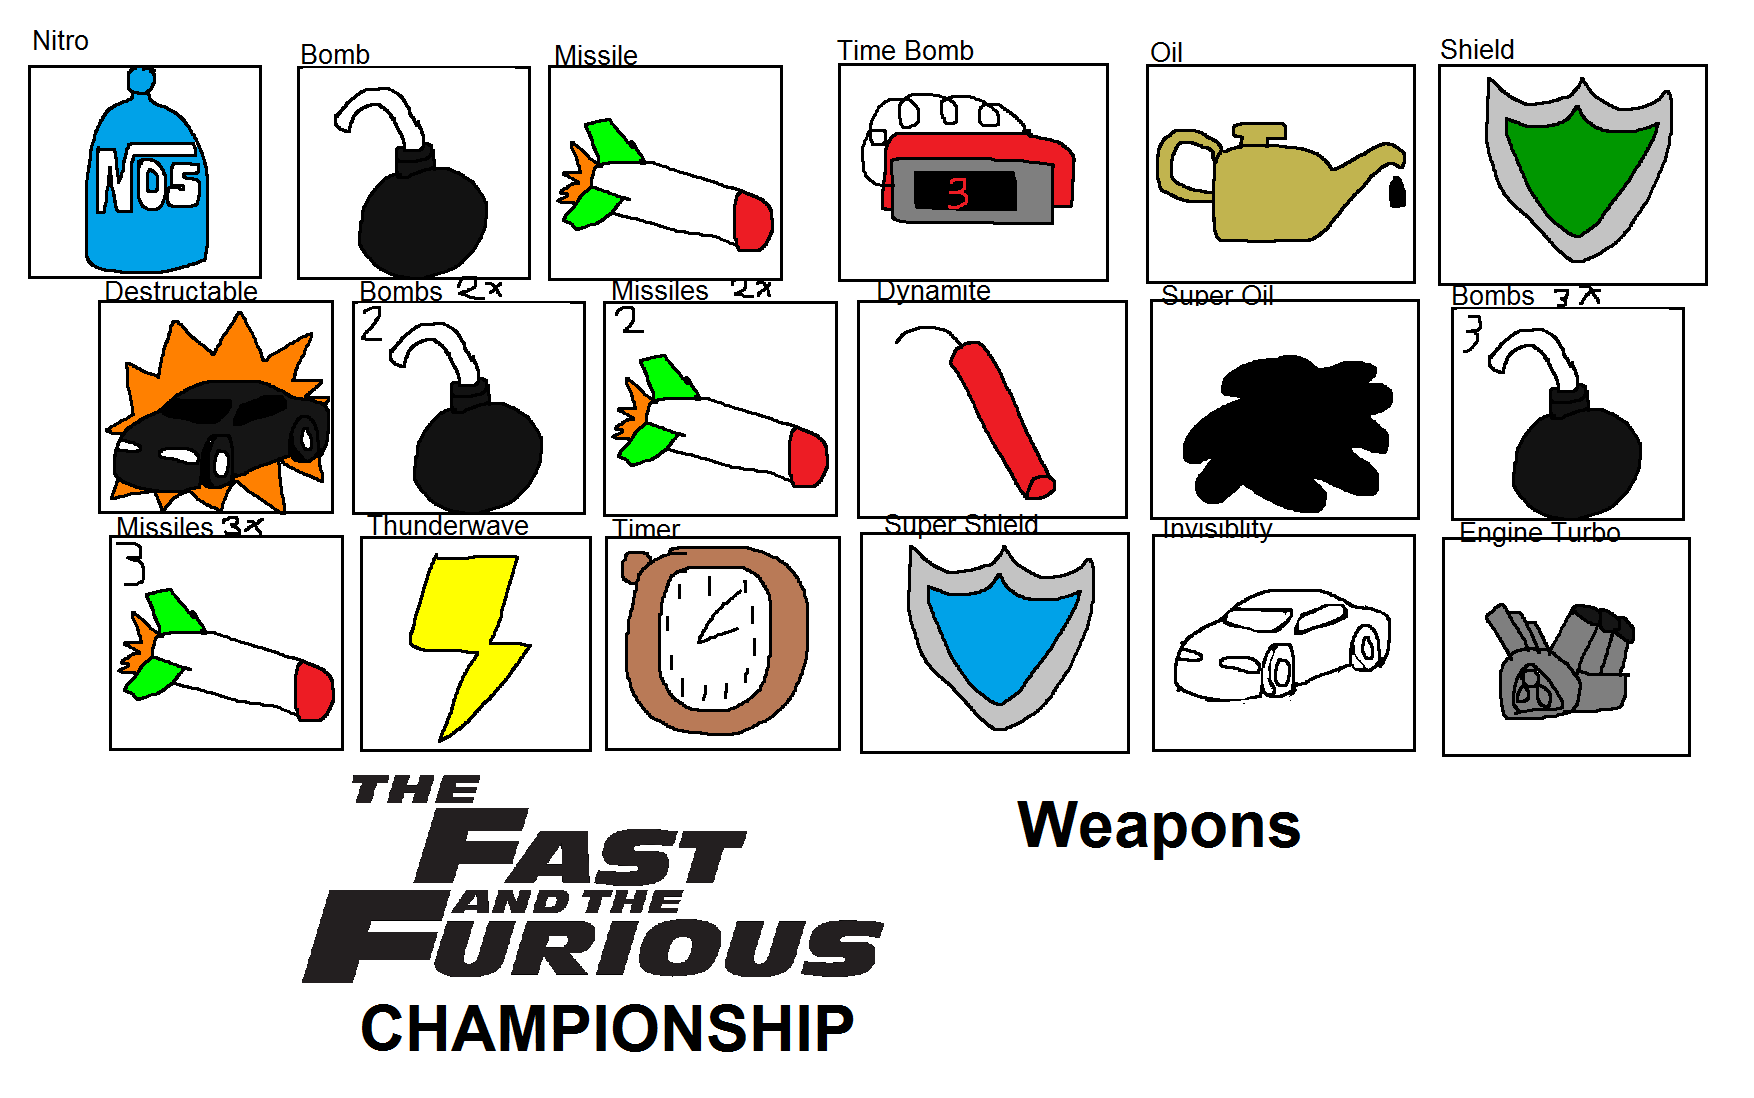 The Fast and the Furious Championship Weapons by Rainbow-Dash-Rockz